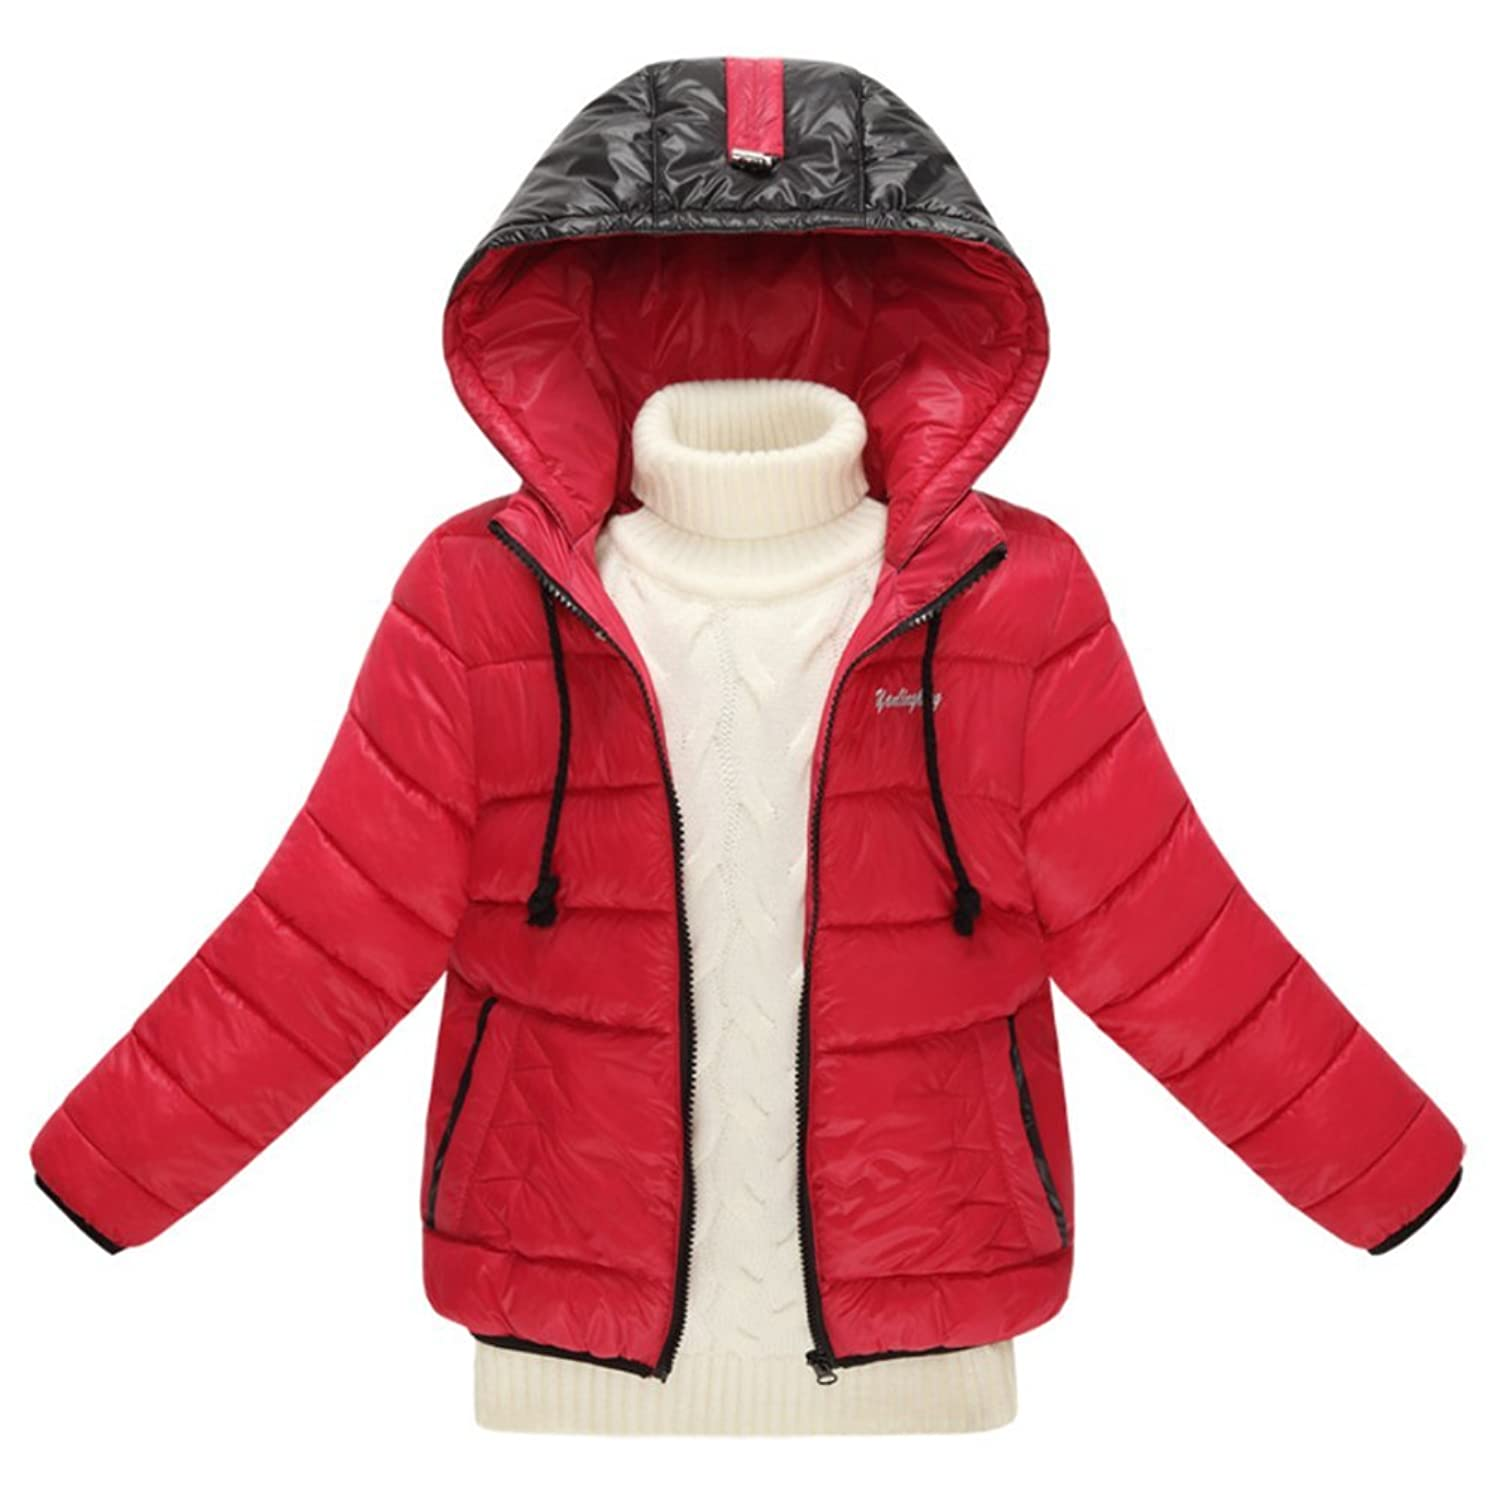 iikids Daunenjacke Kinder Mädchen Jungen Winterjacke mit Kapuze Kordelzug Rot Schwarz Blau Orange Wintermantel Mantel Jacket Trenchcoat Parka Outerwear Oberbekleidung Winter Kleidung günstig online kaufen